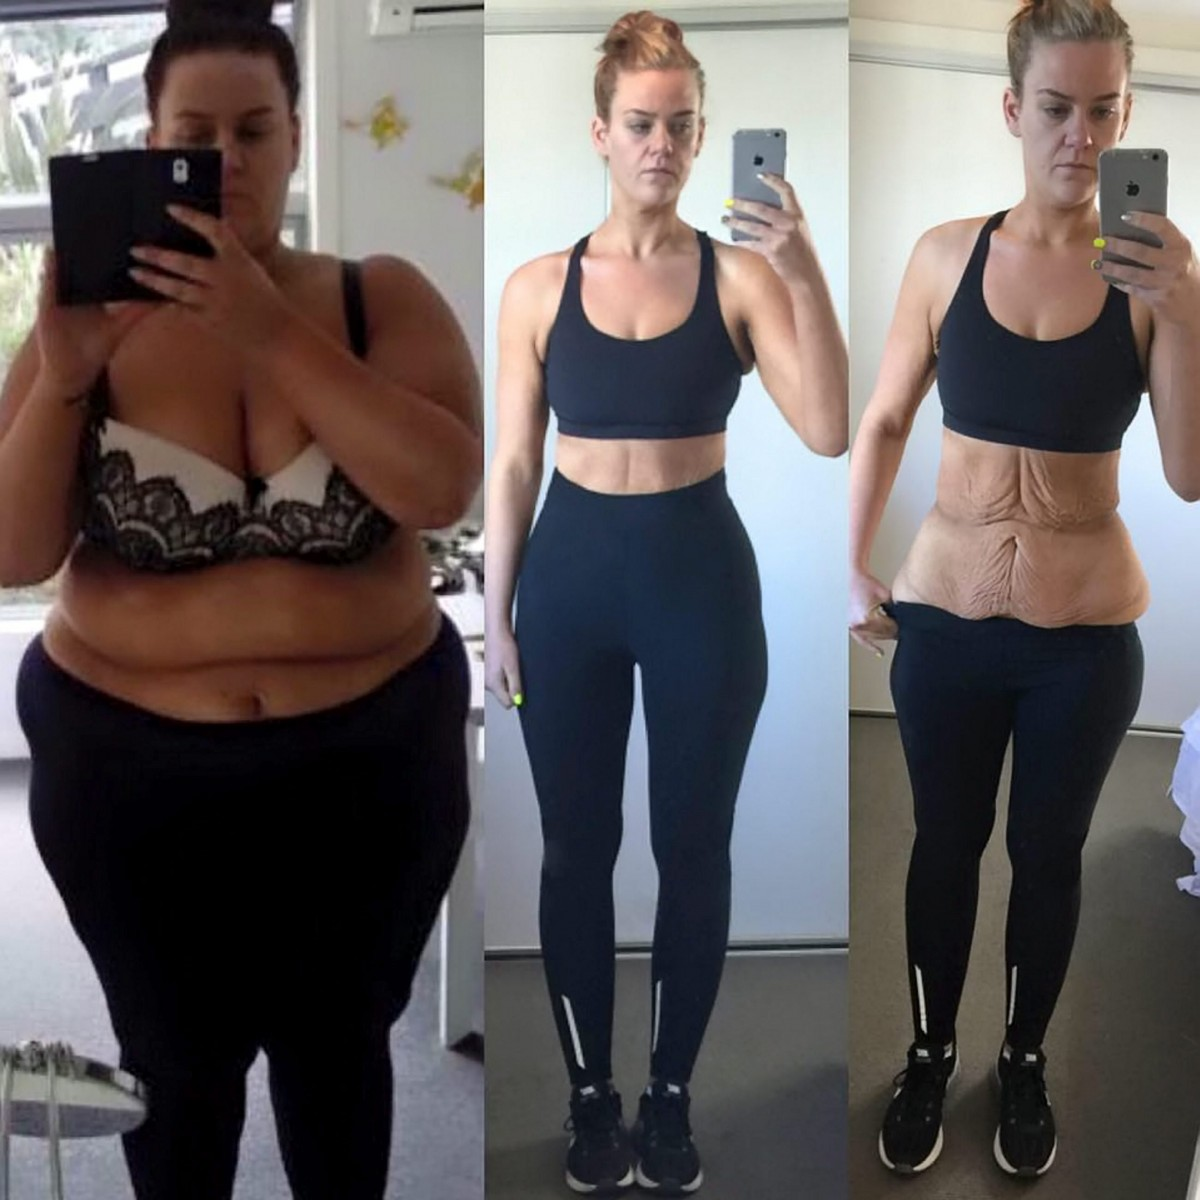 This woman agonised about revealing these images – 70k people believe she made the right decision